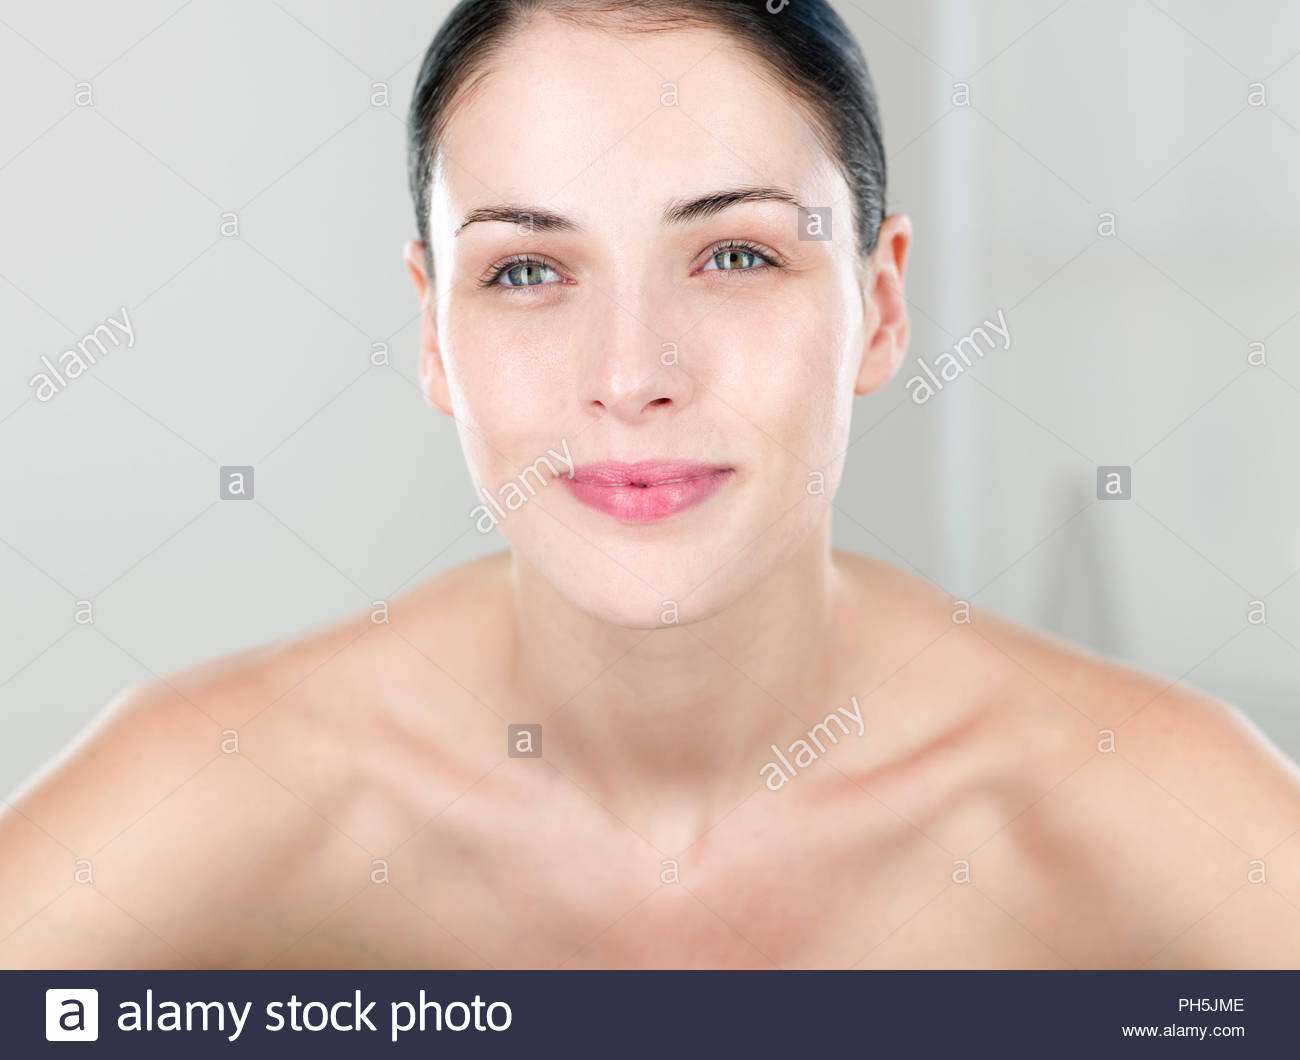 Portrait of young woman in natural condition - Stock Image